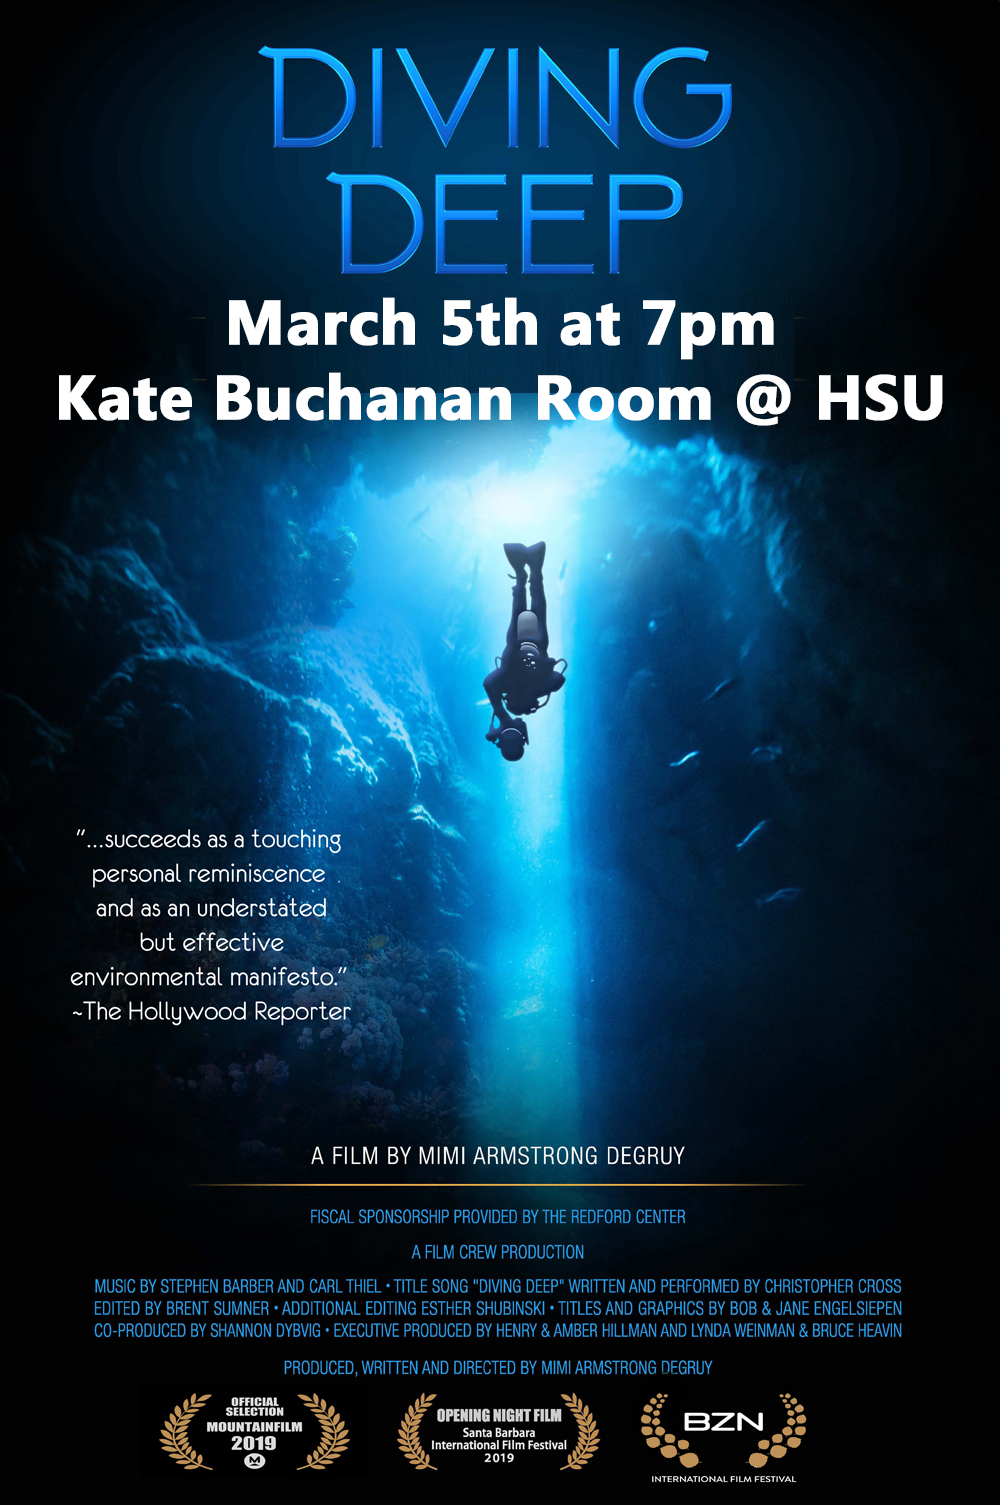 Diving Deep at HSU – March 5th @ 7pm